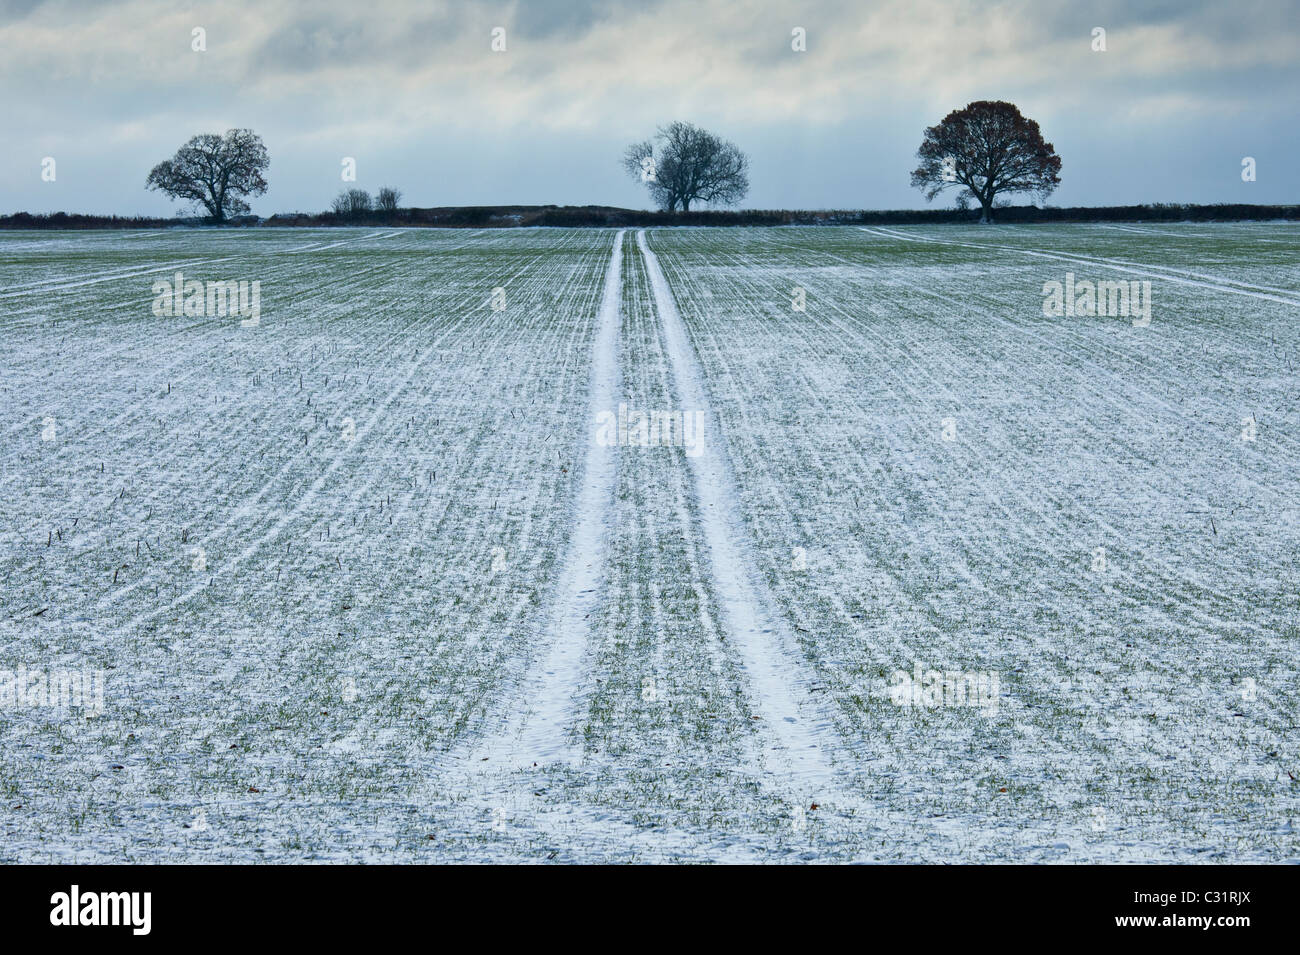 Frosty scene field and trees during hoar frost in winter, The Cotswolds, UK - Stock Image